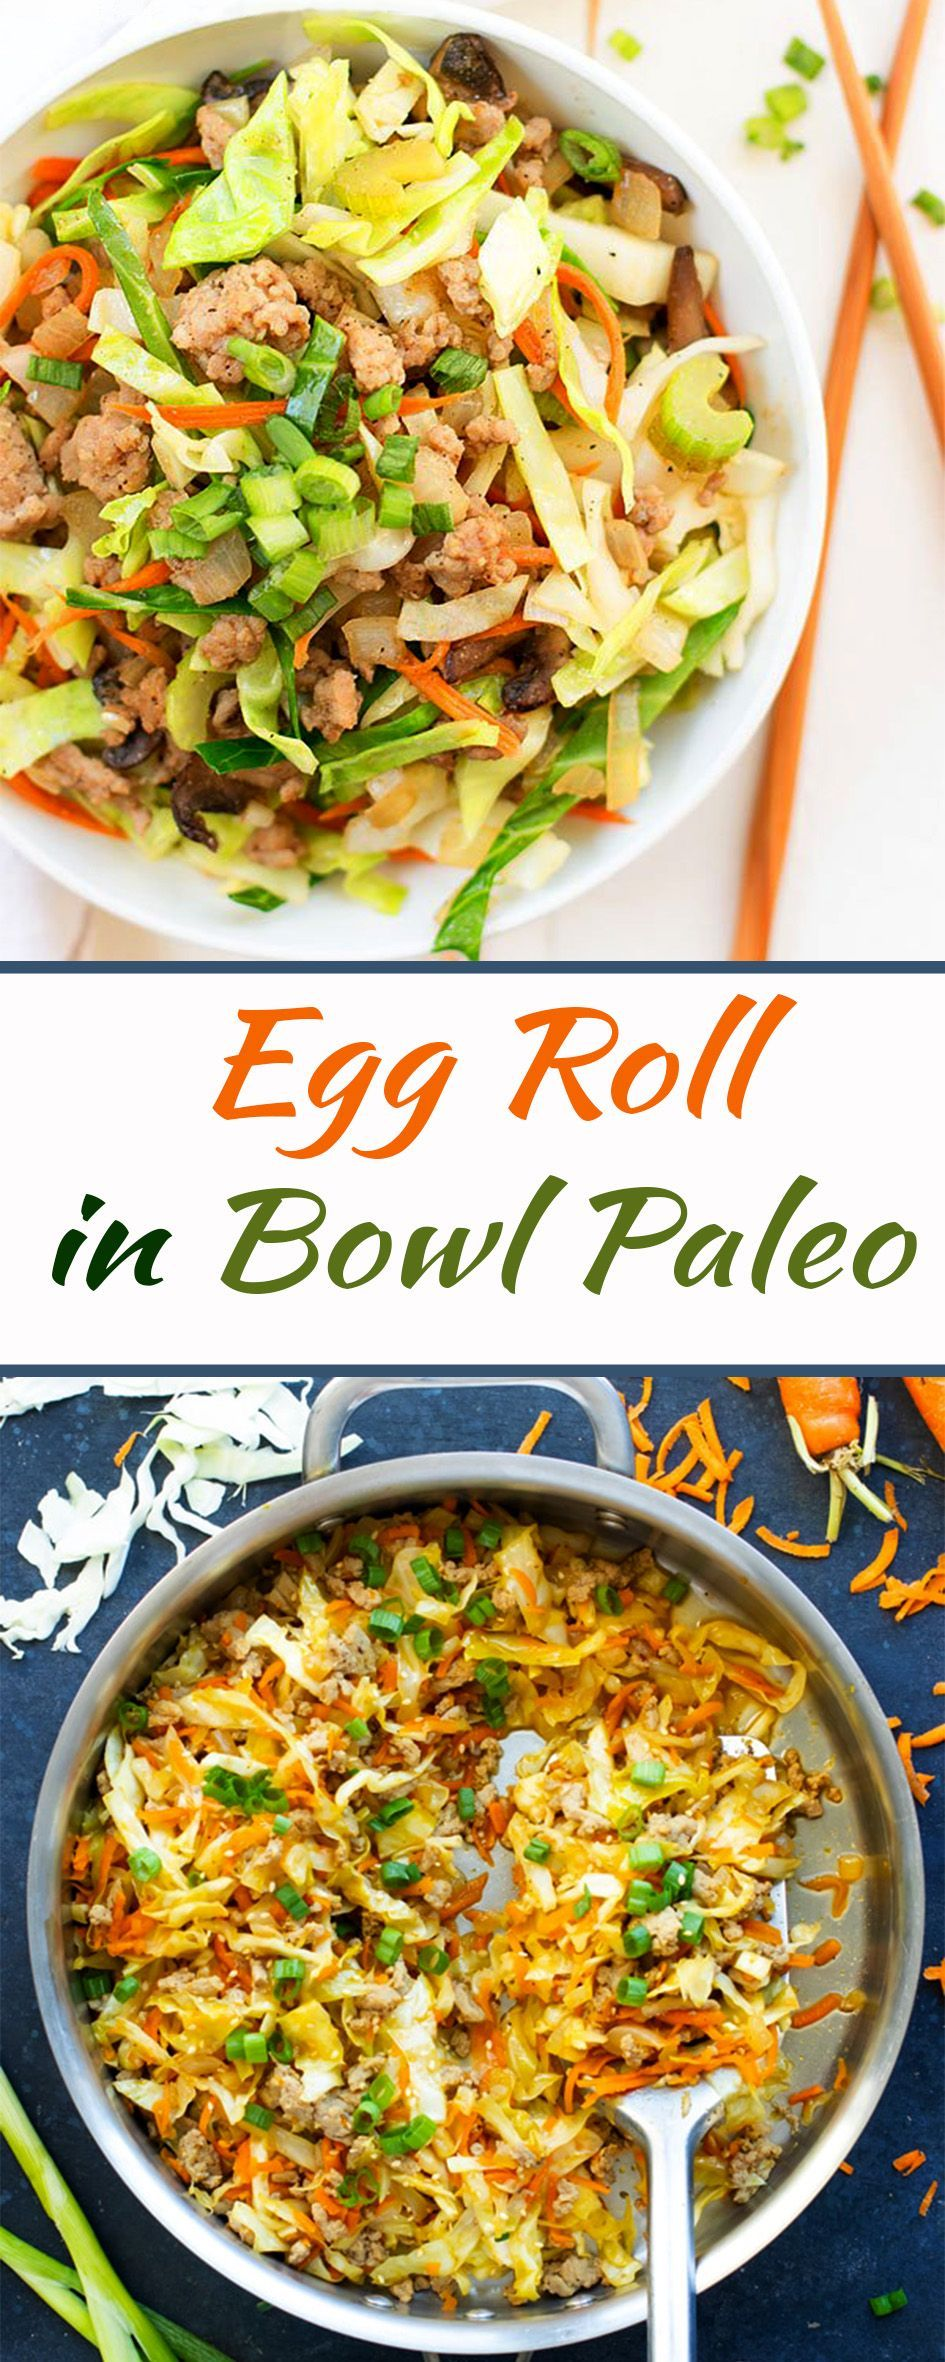 Egg Roll in a Bowl Paleo #eggrollinabowl This Egg Roll in a Bowl recipe is loaded with Asian flavor and is a Paleo, Whole30, gluten-free, dairy-free and keto recipe to make for an easy weeknight dinner.  From start to finish, you can have this healthy and low-carb dinner recipe ready in under 30 minutes!   #eggroll  #egg  #eggrecipe  #paleo  #bowl  #boelpaleo  #eggrollrecipe  #recipe #eggrollinabowl